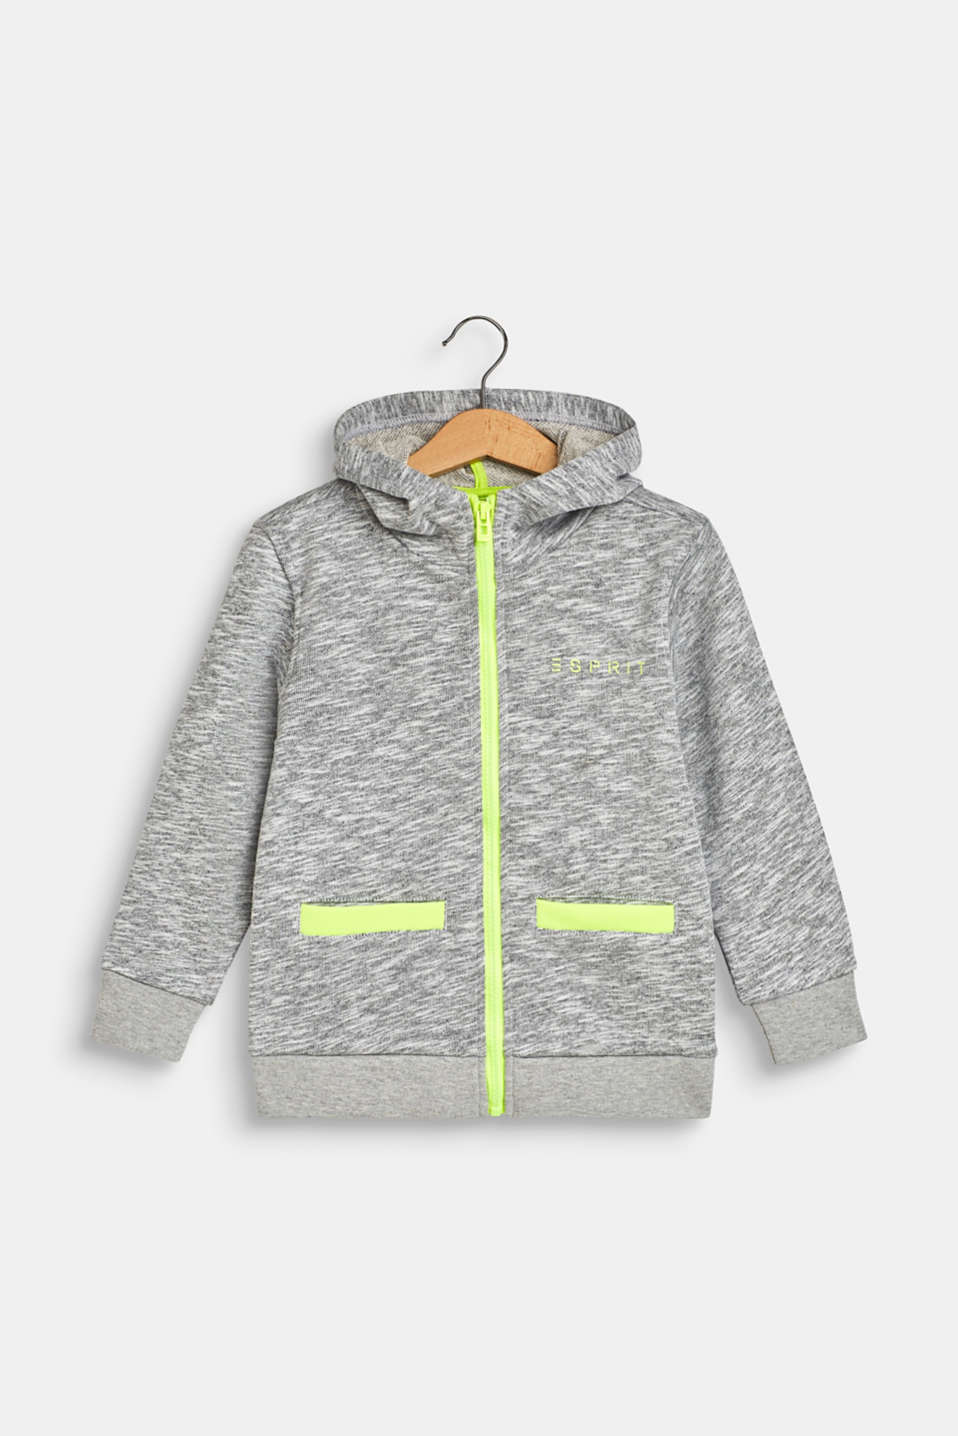 Esprit - Sweatshirt fabric cardigan with neon details, 100% cotton